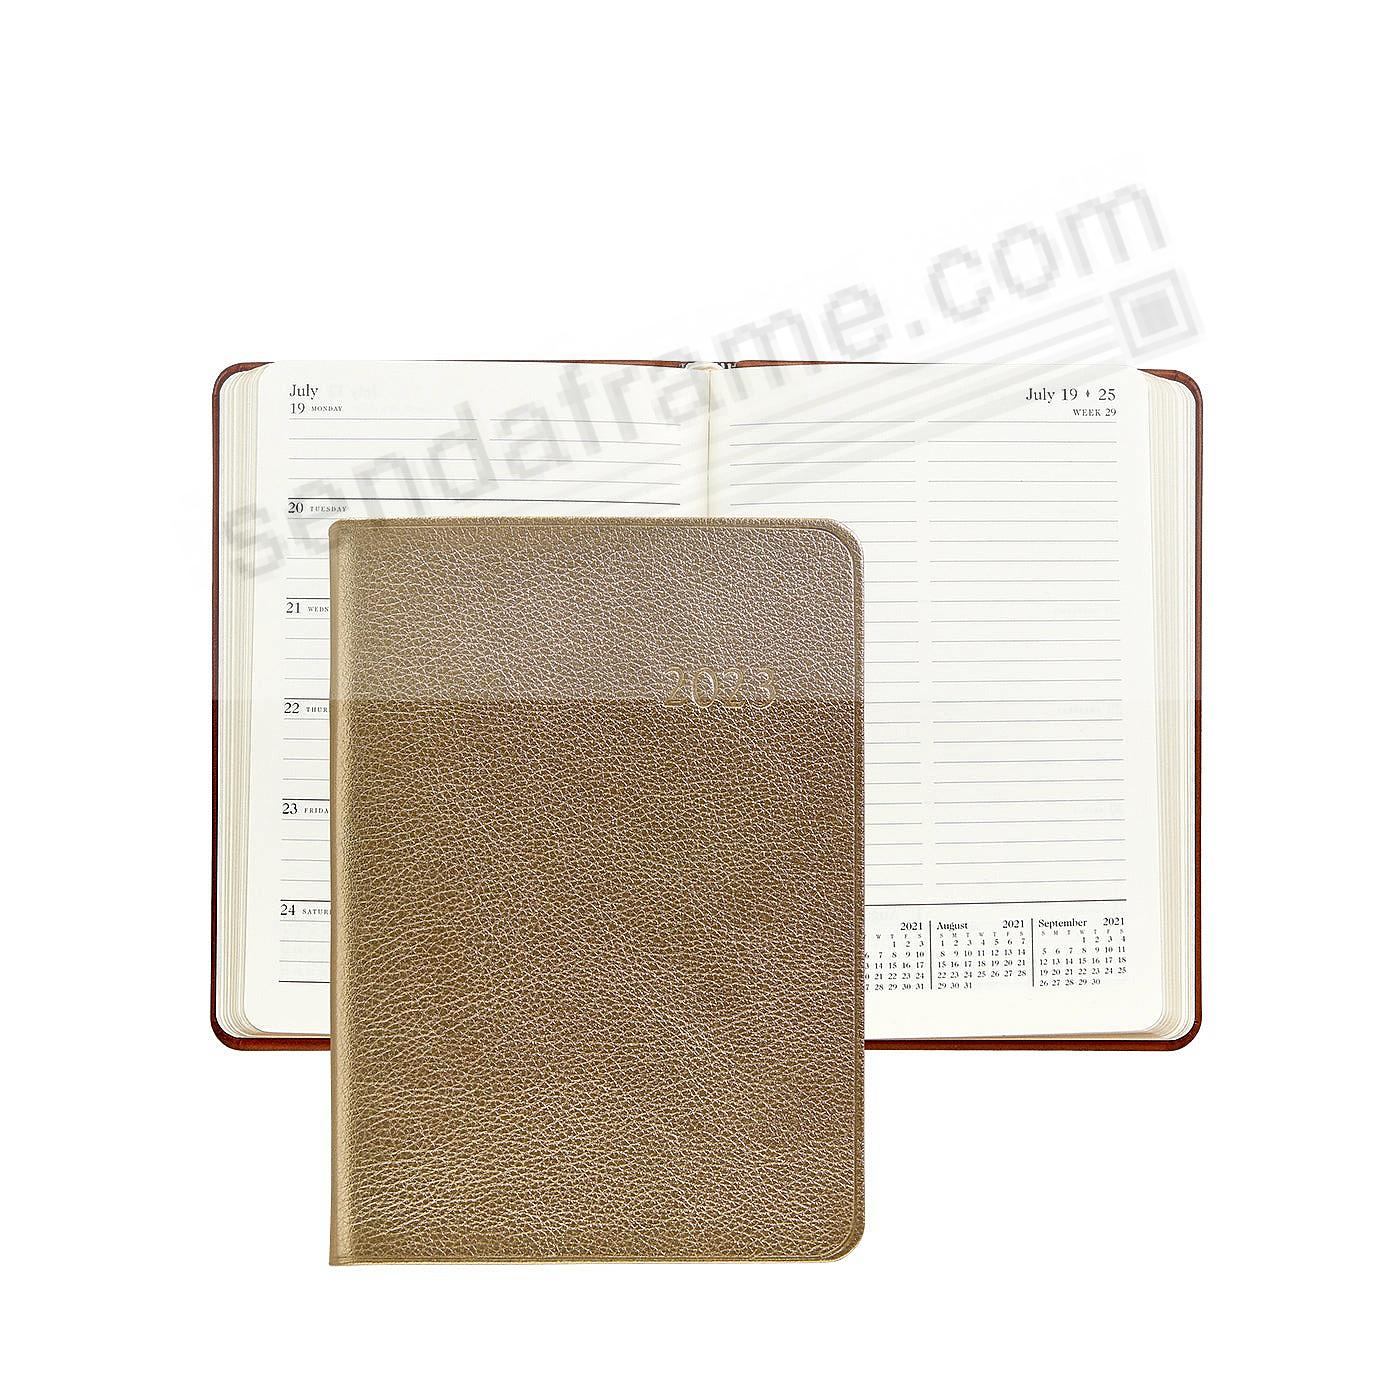 2020 Notebook Planner 7-in WHITE-GOLD METALLICS Fine Leather by Graphic Image™